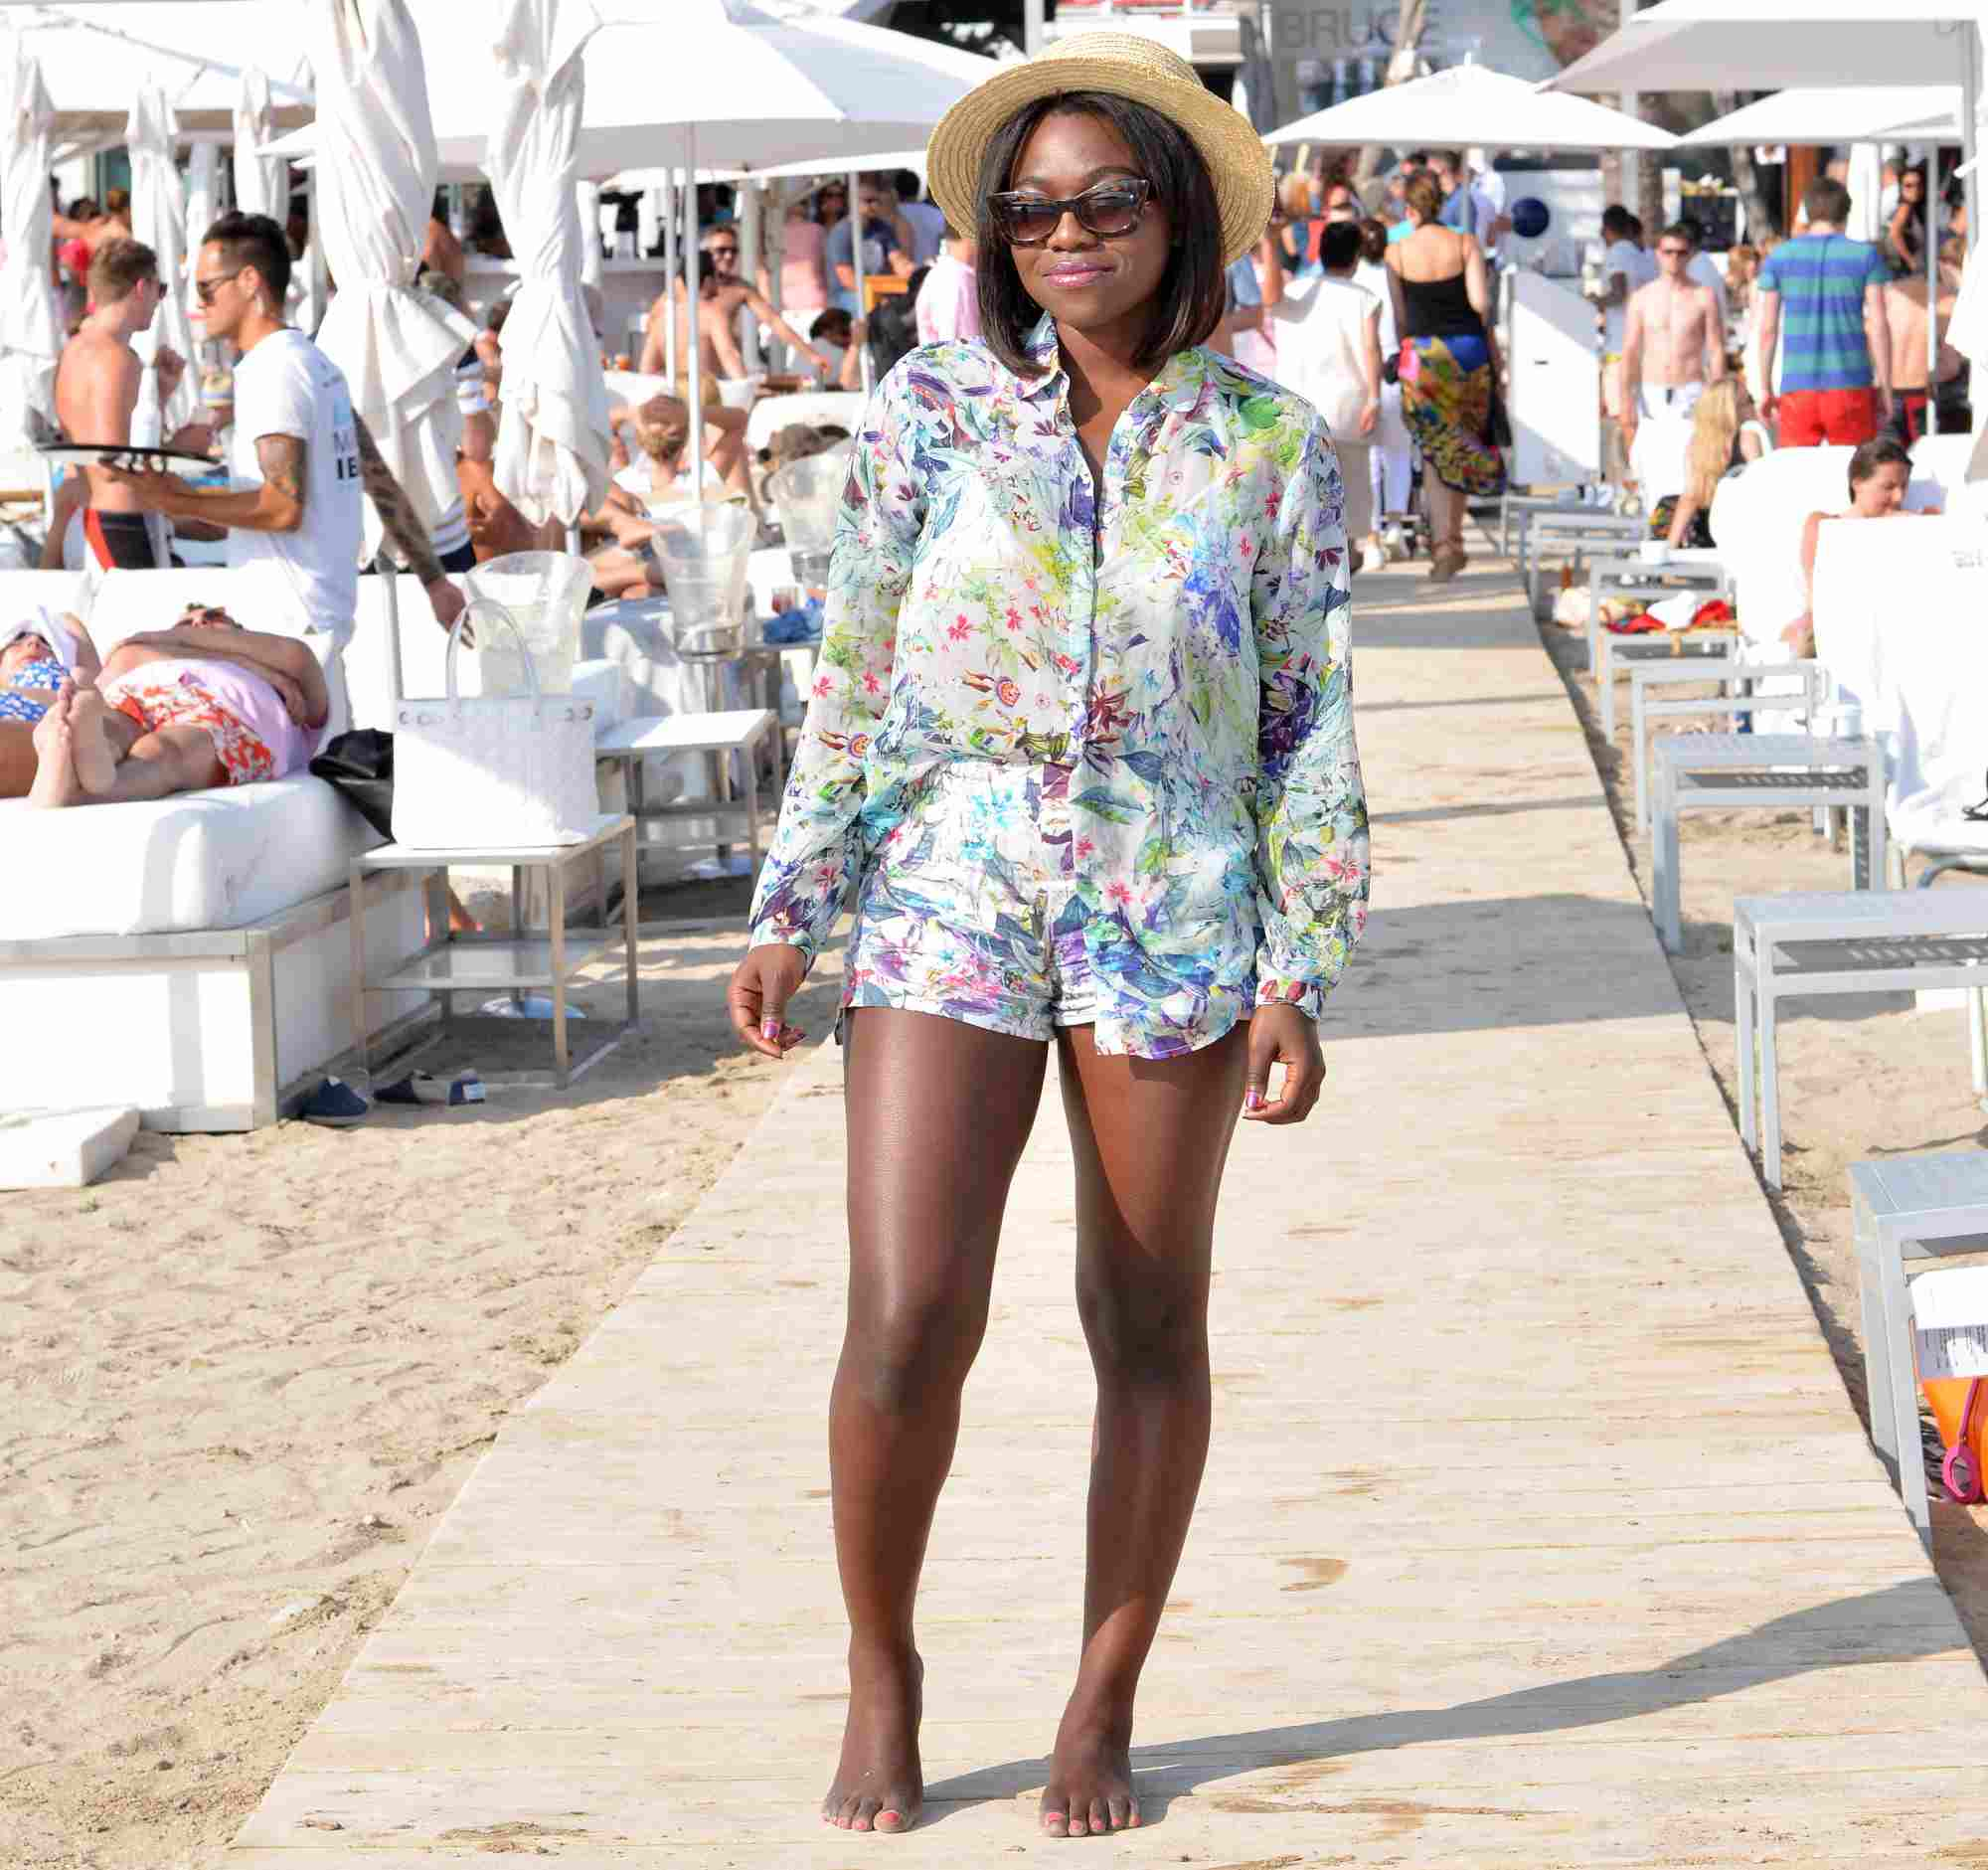 Woman in floral romper for beach fashion